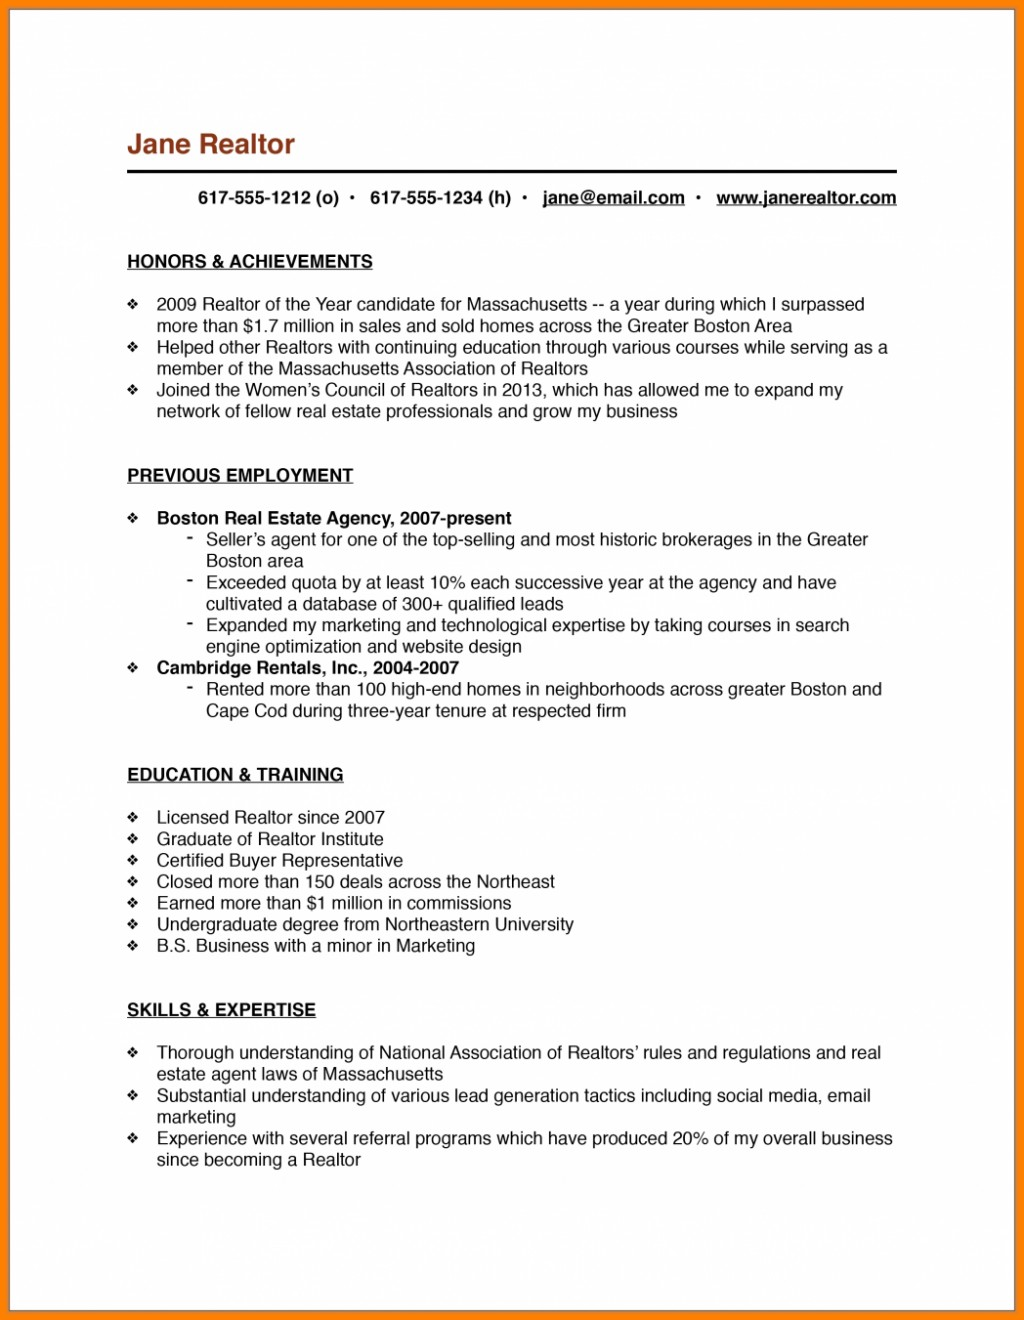 012 Social Work Essay Writers Custom Paper Academic Writing Service Scholarship Examples Awesome Collection Of Personal Statement Stunning Free Graduate Evidence Based Practice In 1048x1351 Why I Outstanding Want To Be A Worker Study Do Become Became Large